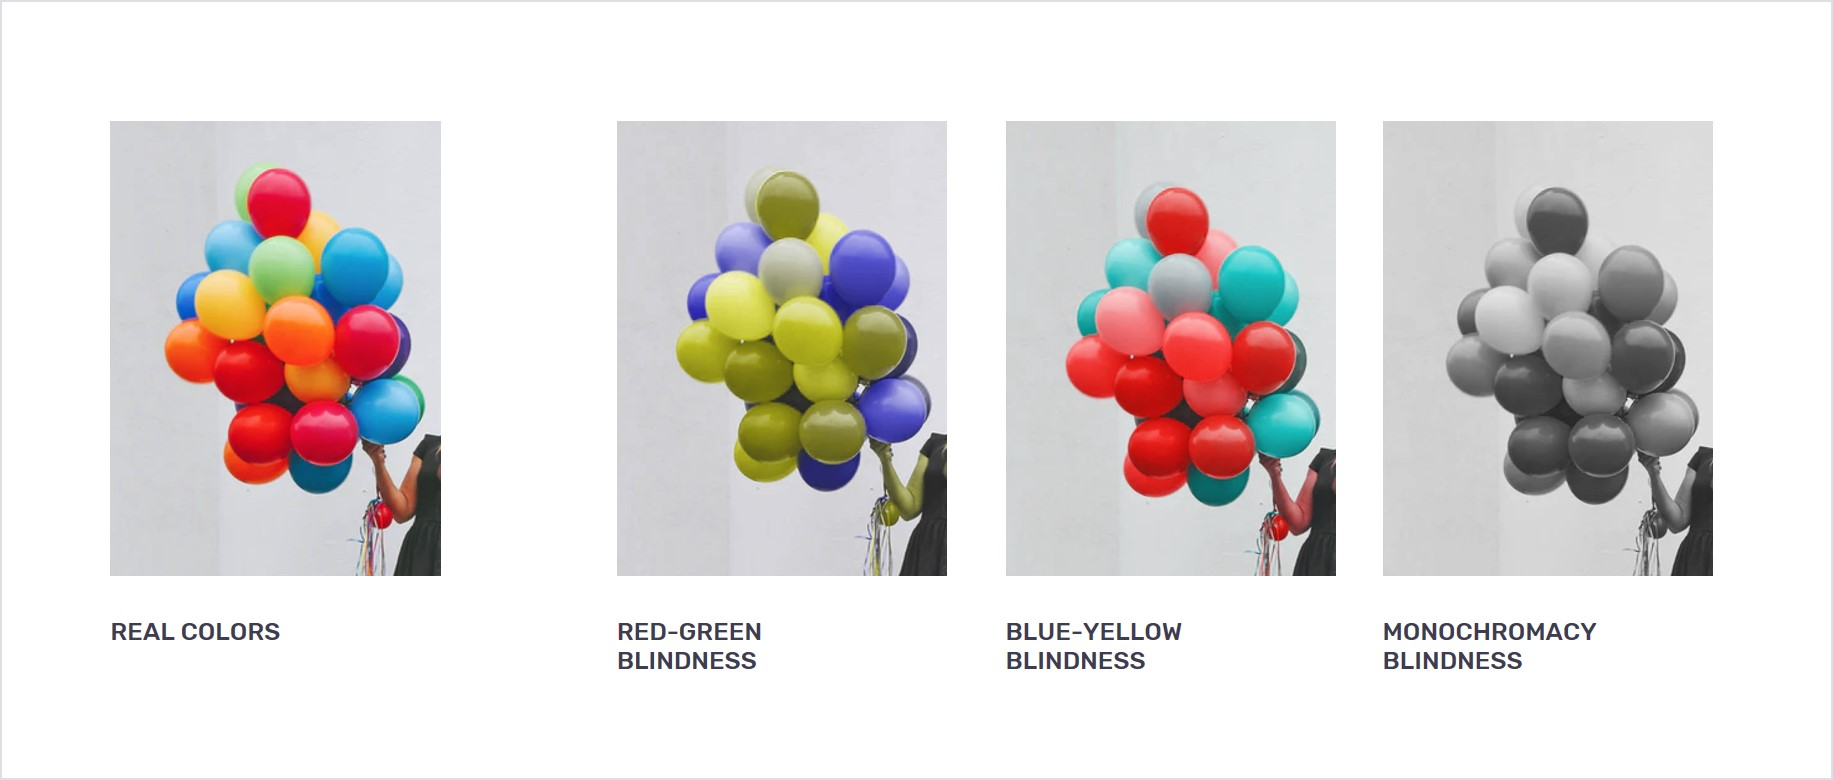 Visualization of color blindness